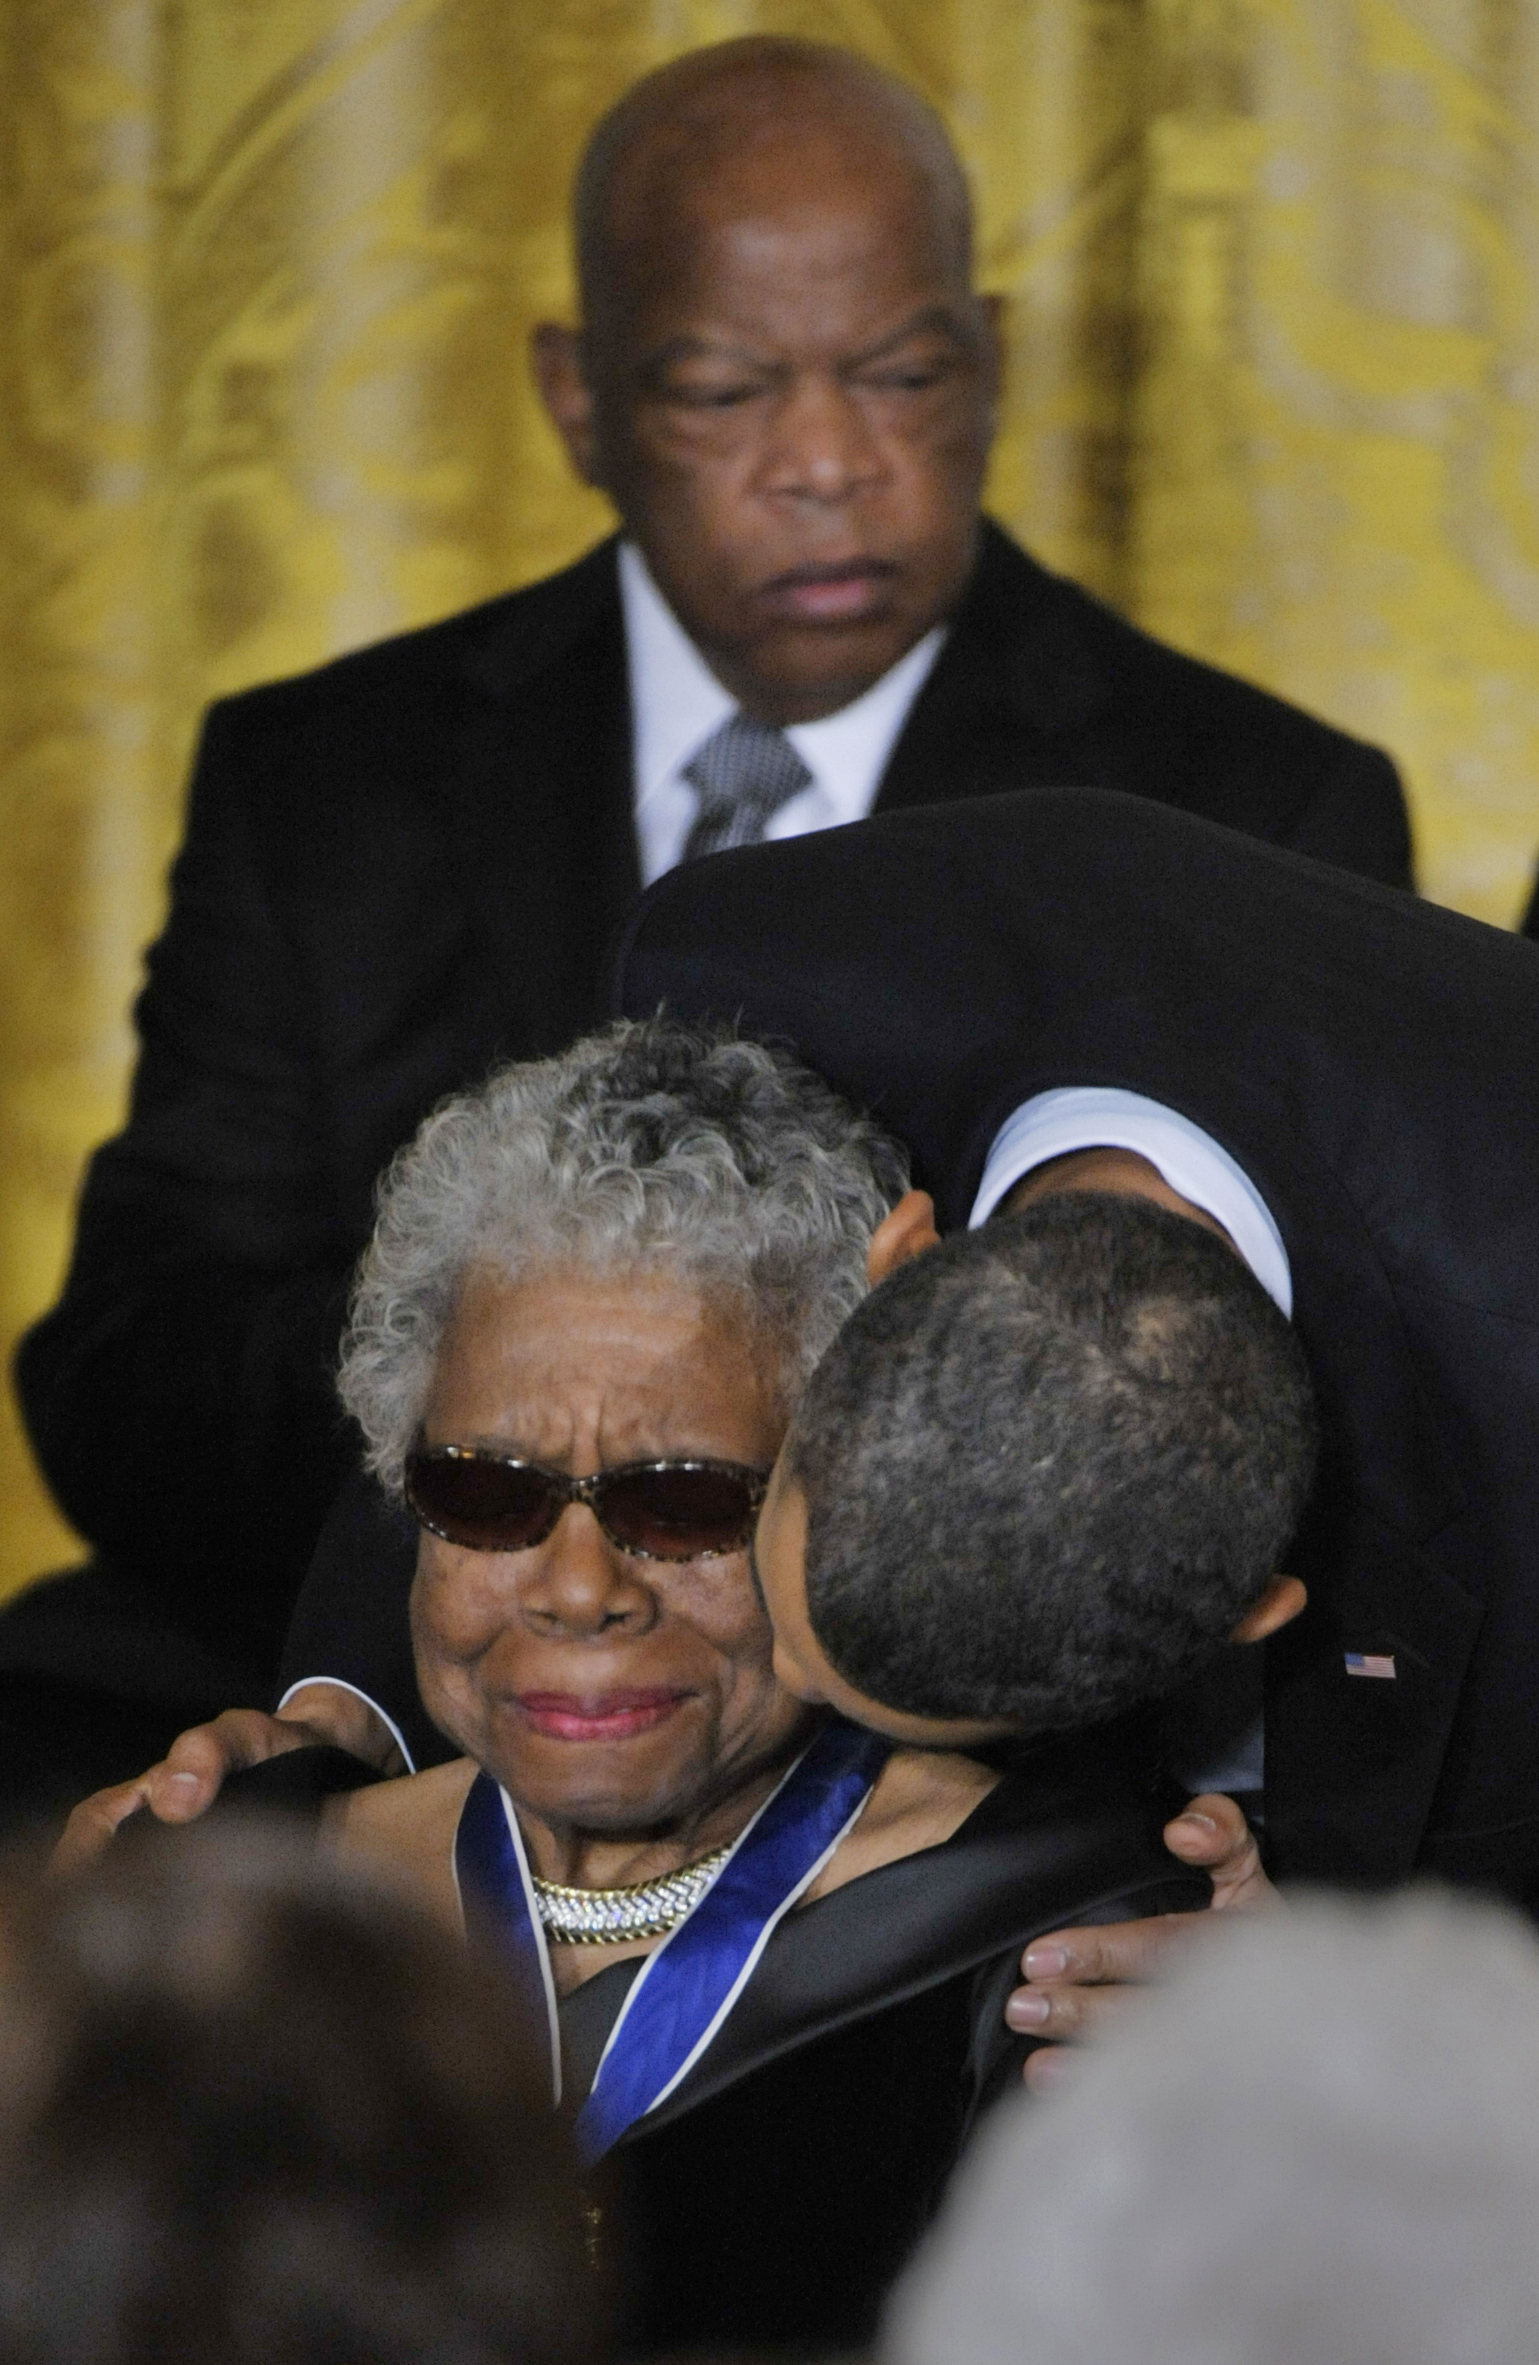 President Obama awards Poet Maya Angelou with the Medal of Freedom as well as a kiss on her cheek, with Medal of Freedom recipient Congressman John Lewis (D-GA) at the White House on February 15, 2011 in Washington.